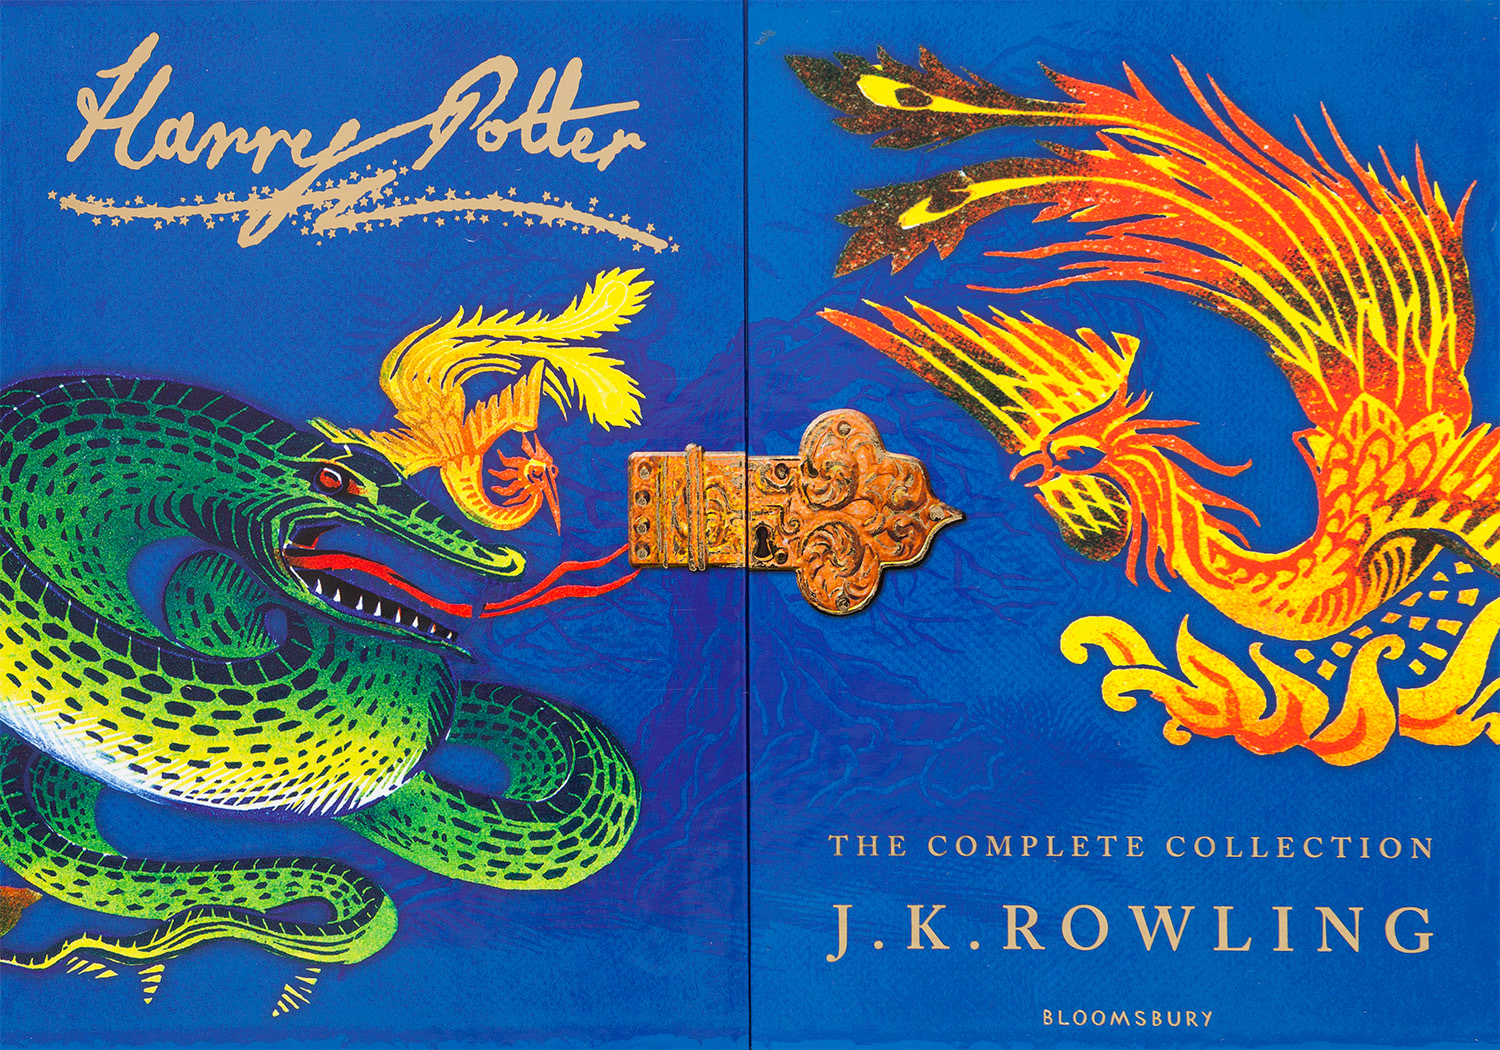 'Harry Potter' signature editions boxed set artwork